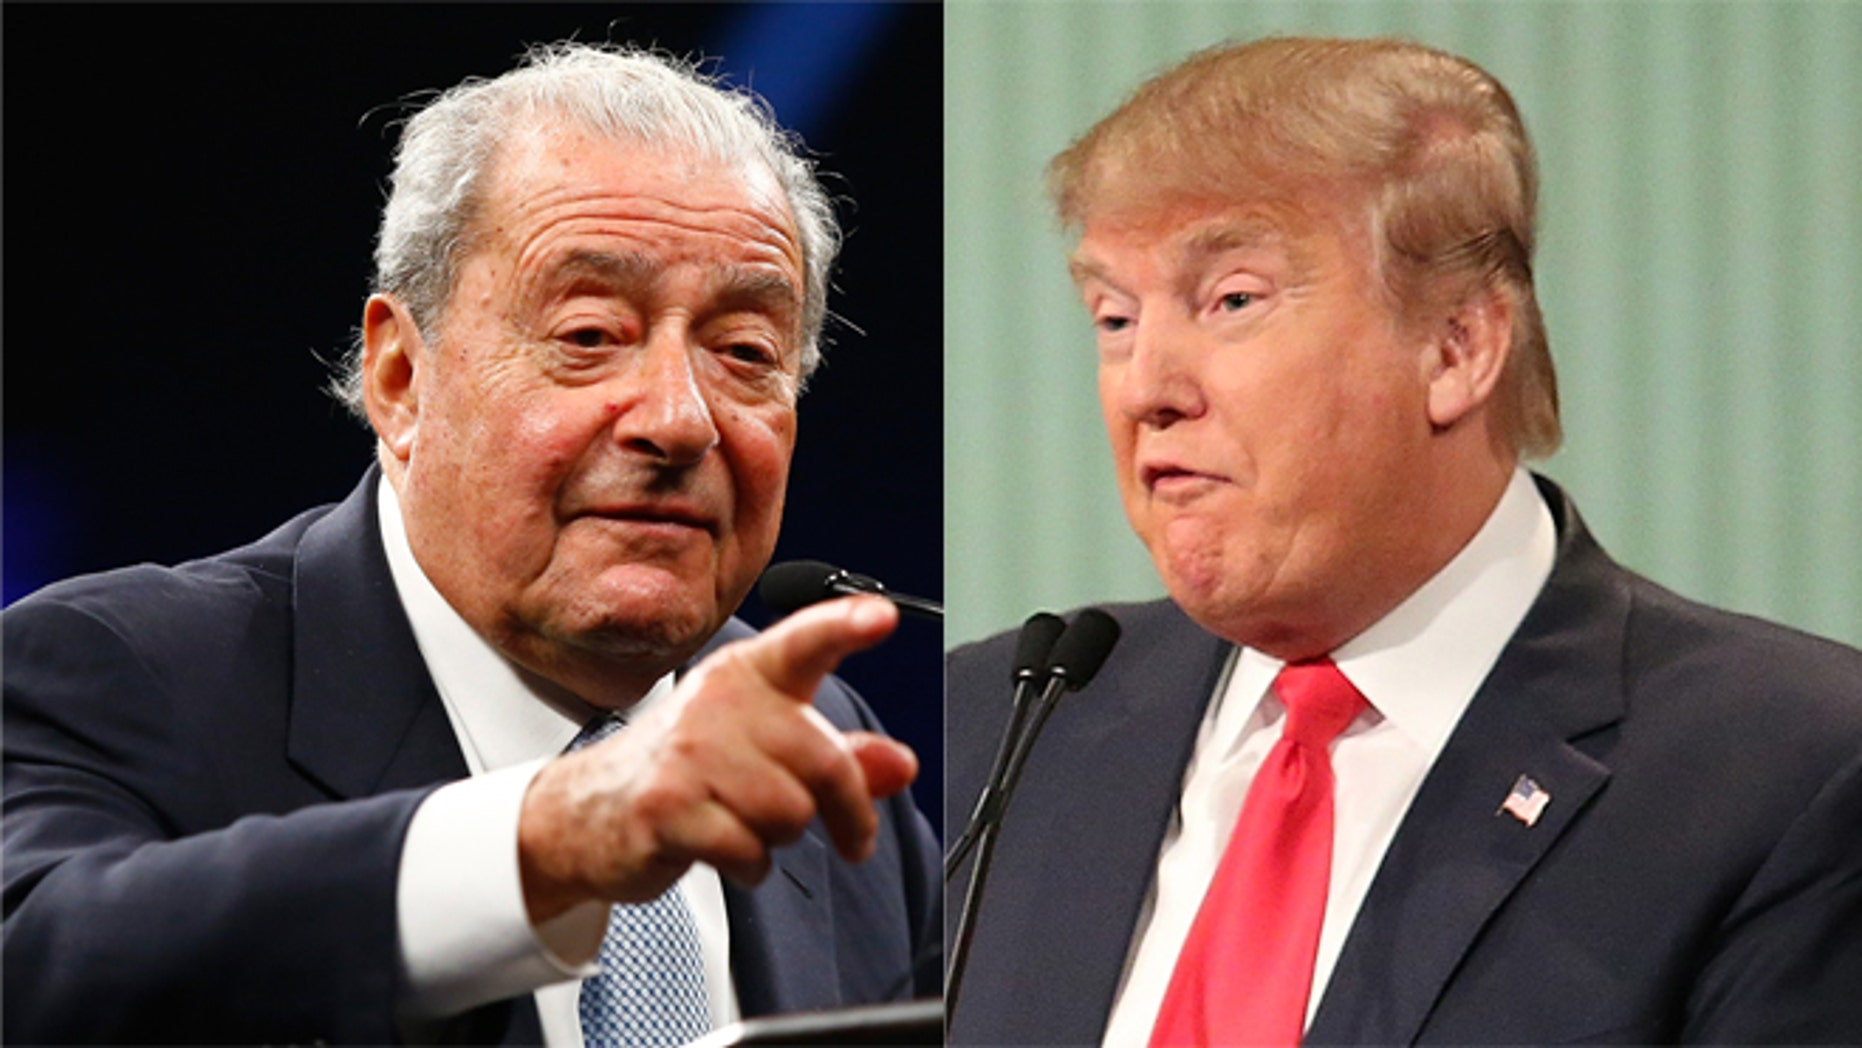 A photo composite of Box promoter Bob Arum and Republican presidential candidate Donald Trump.